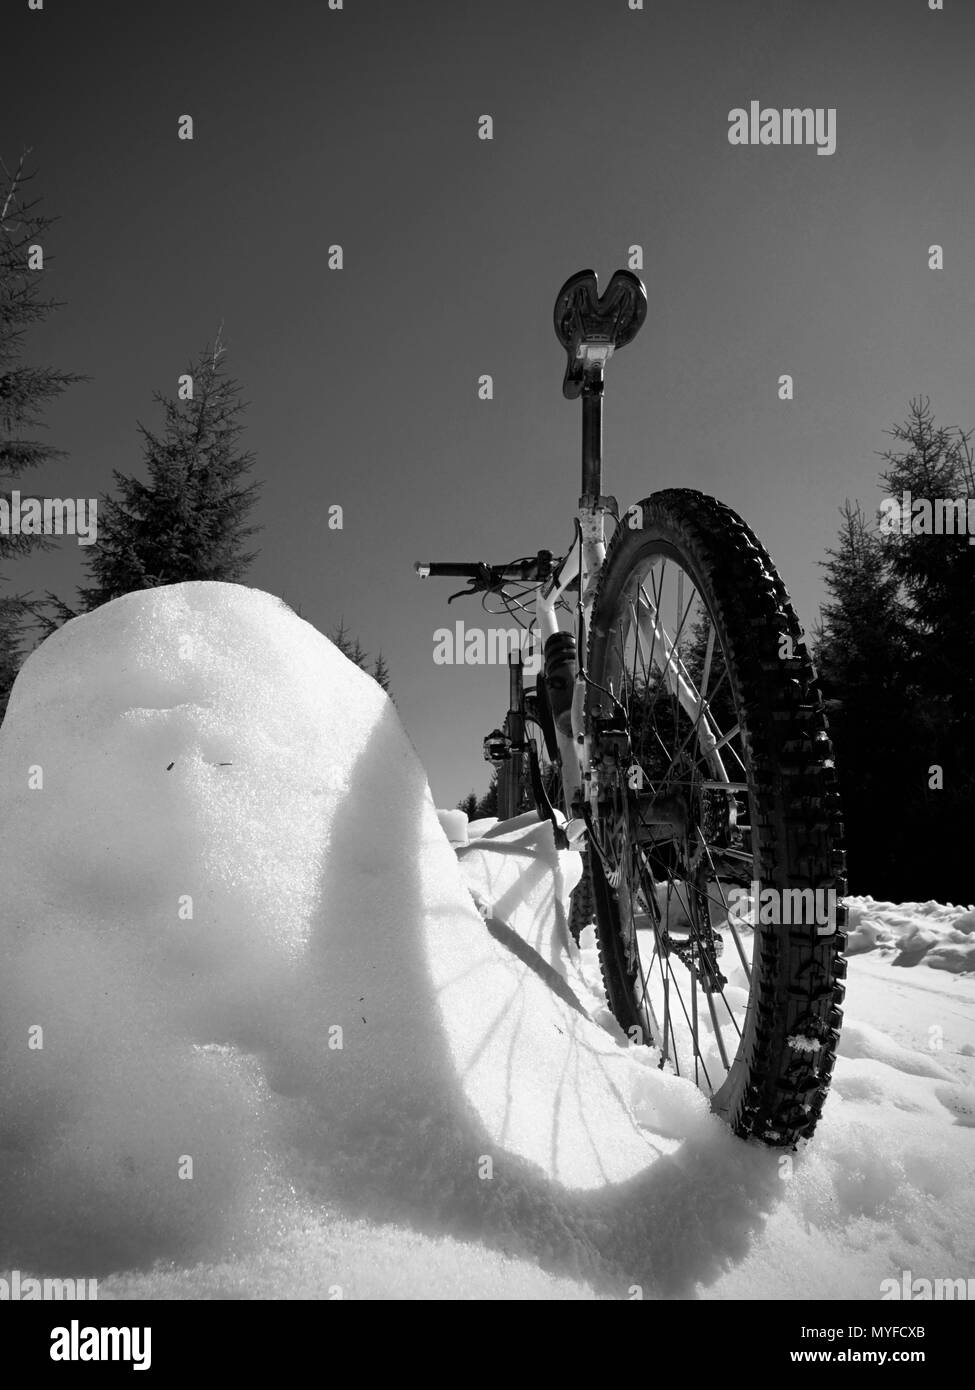 Close wide view to mountain bike stays in snow. Winter snowy mountains with road between trees. - Stock Image